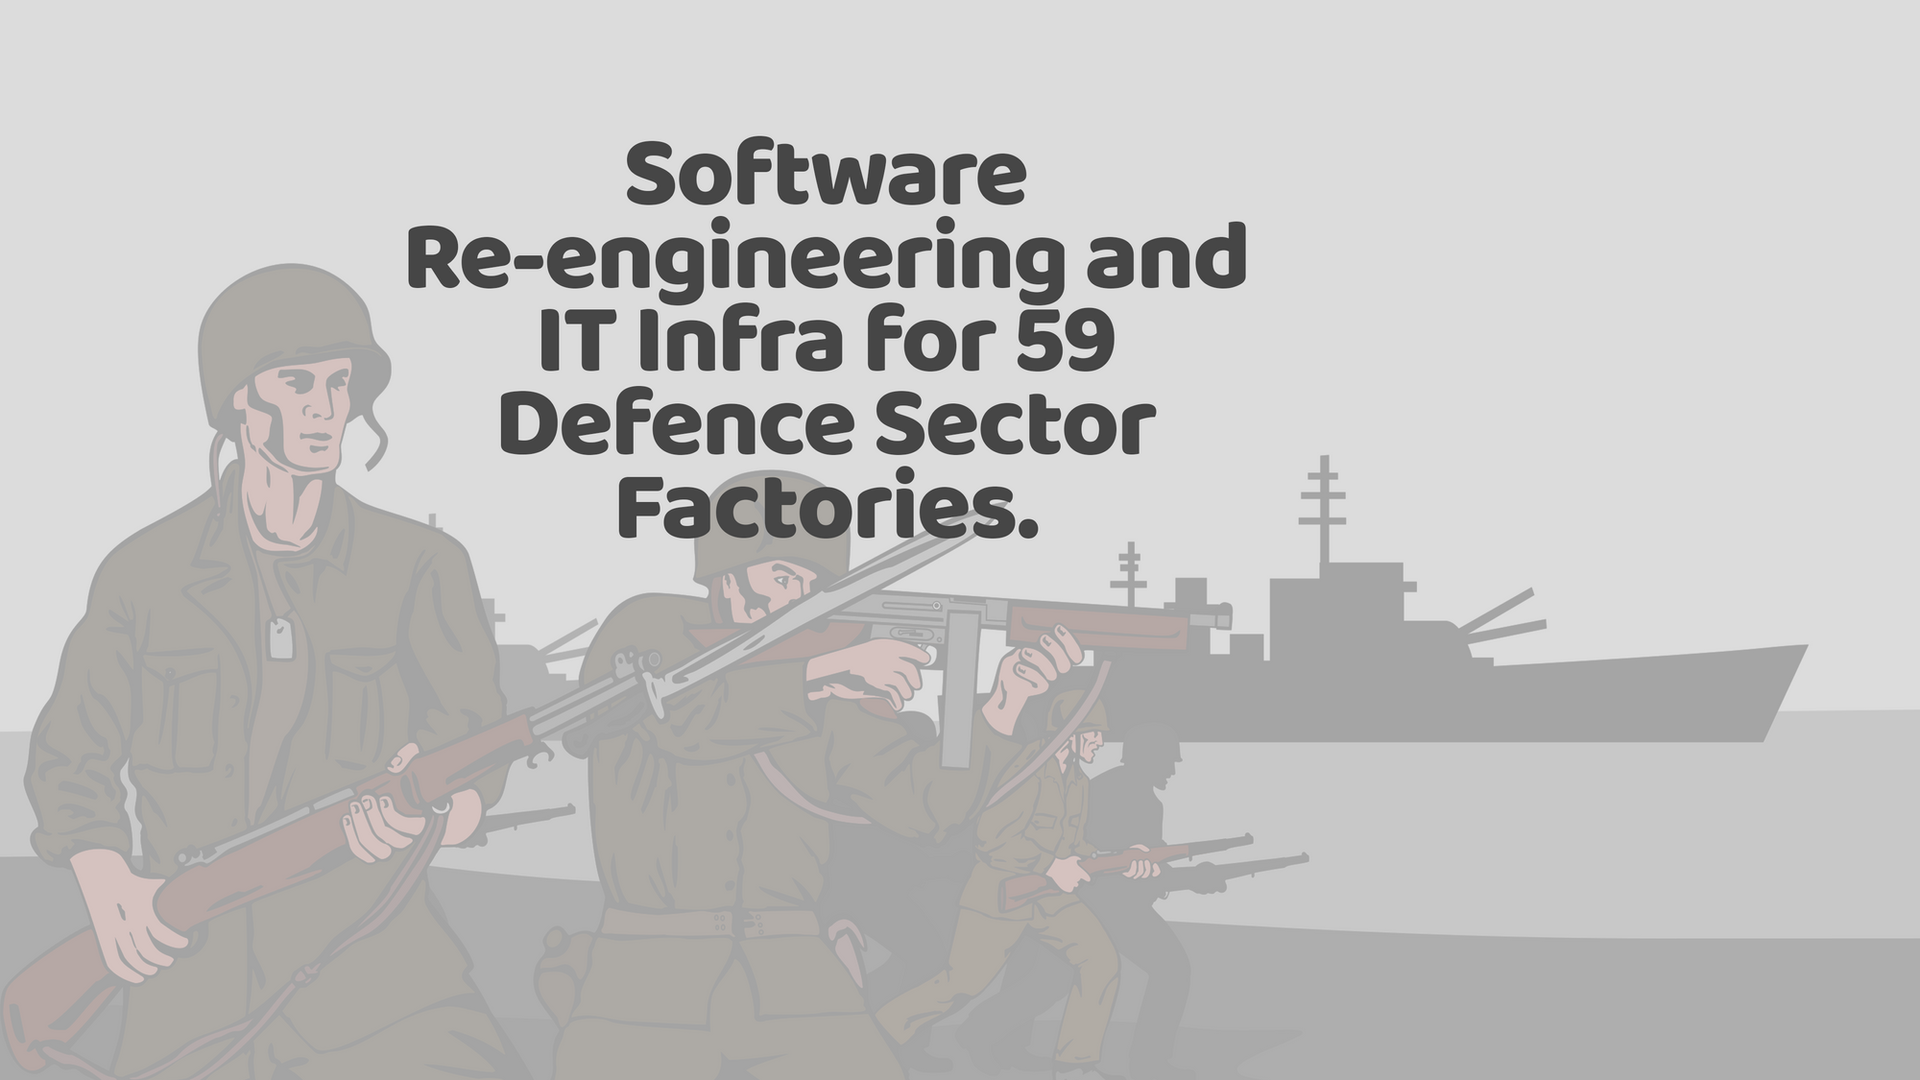 59 Defence Sector Factories